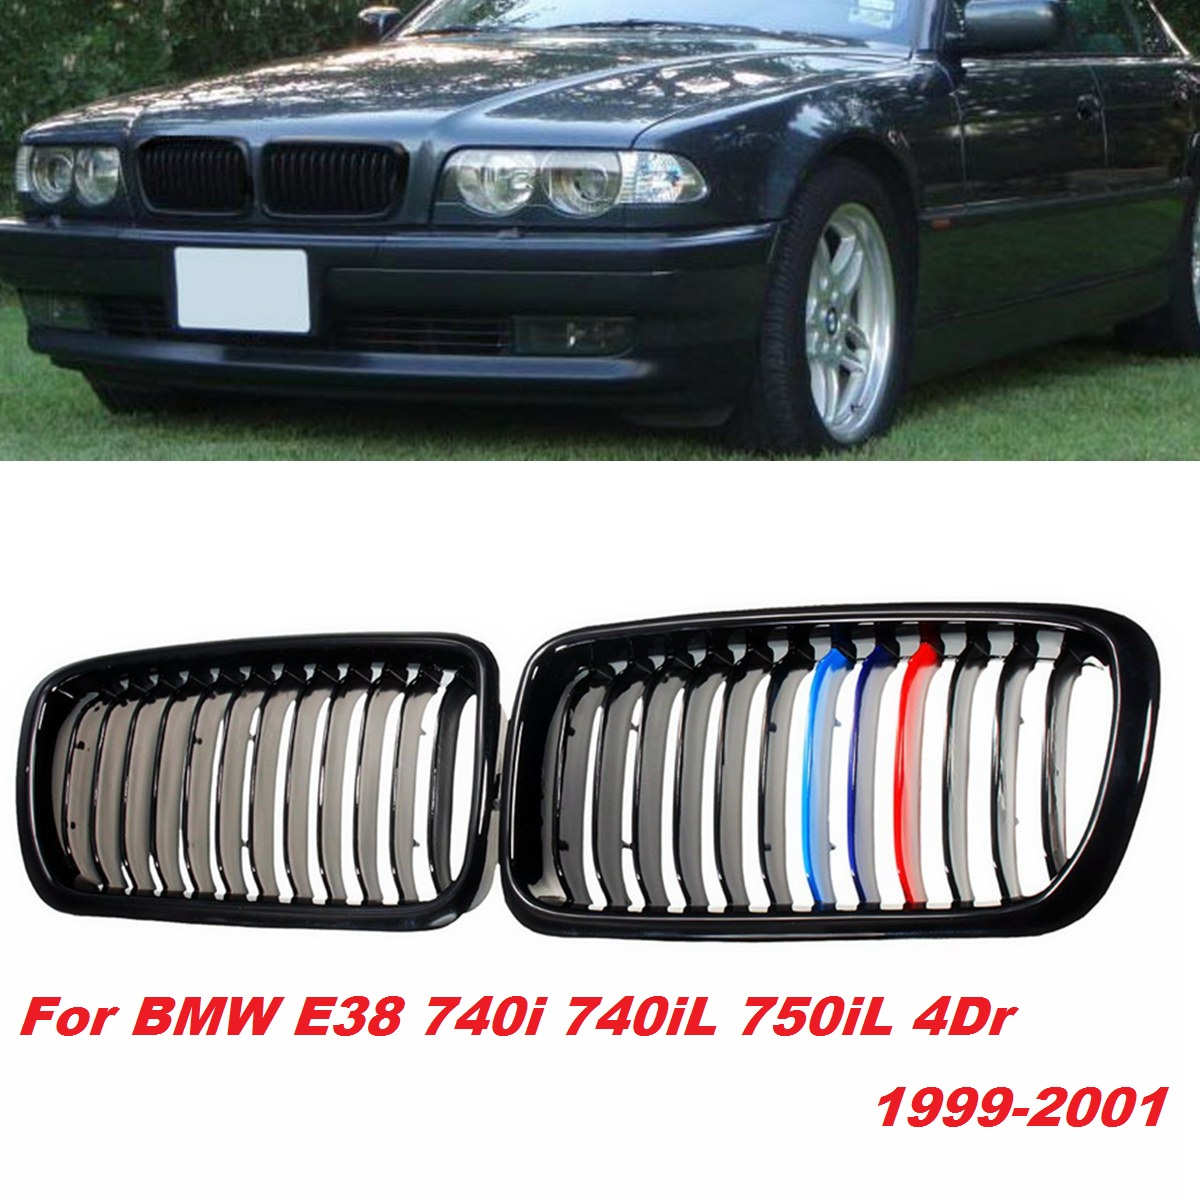 Pair M Color ABS plastic Front Sport Kidney Bumper Hood Grilles Grill for BMW E38 740i 740iL 750iL 4Dr 1999 2000 2001